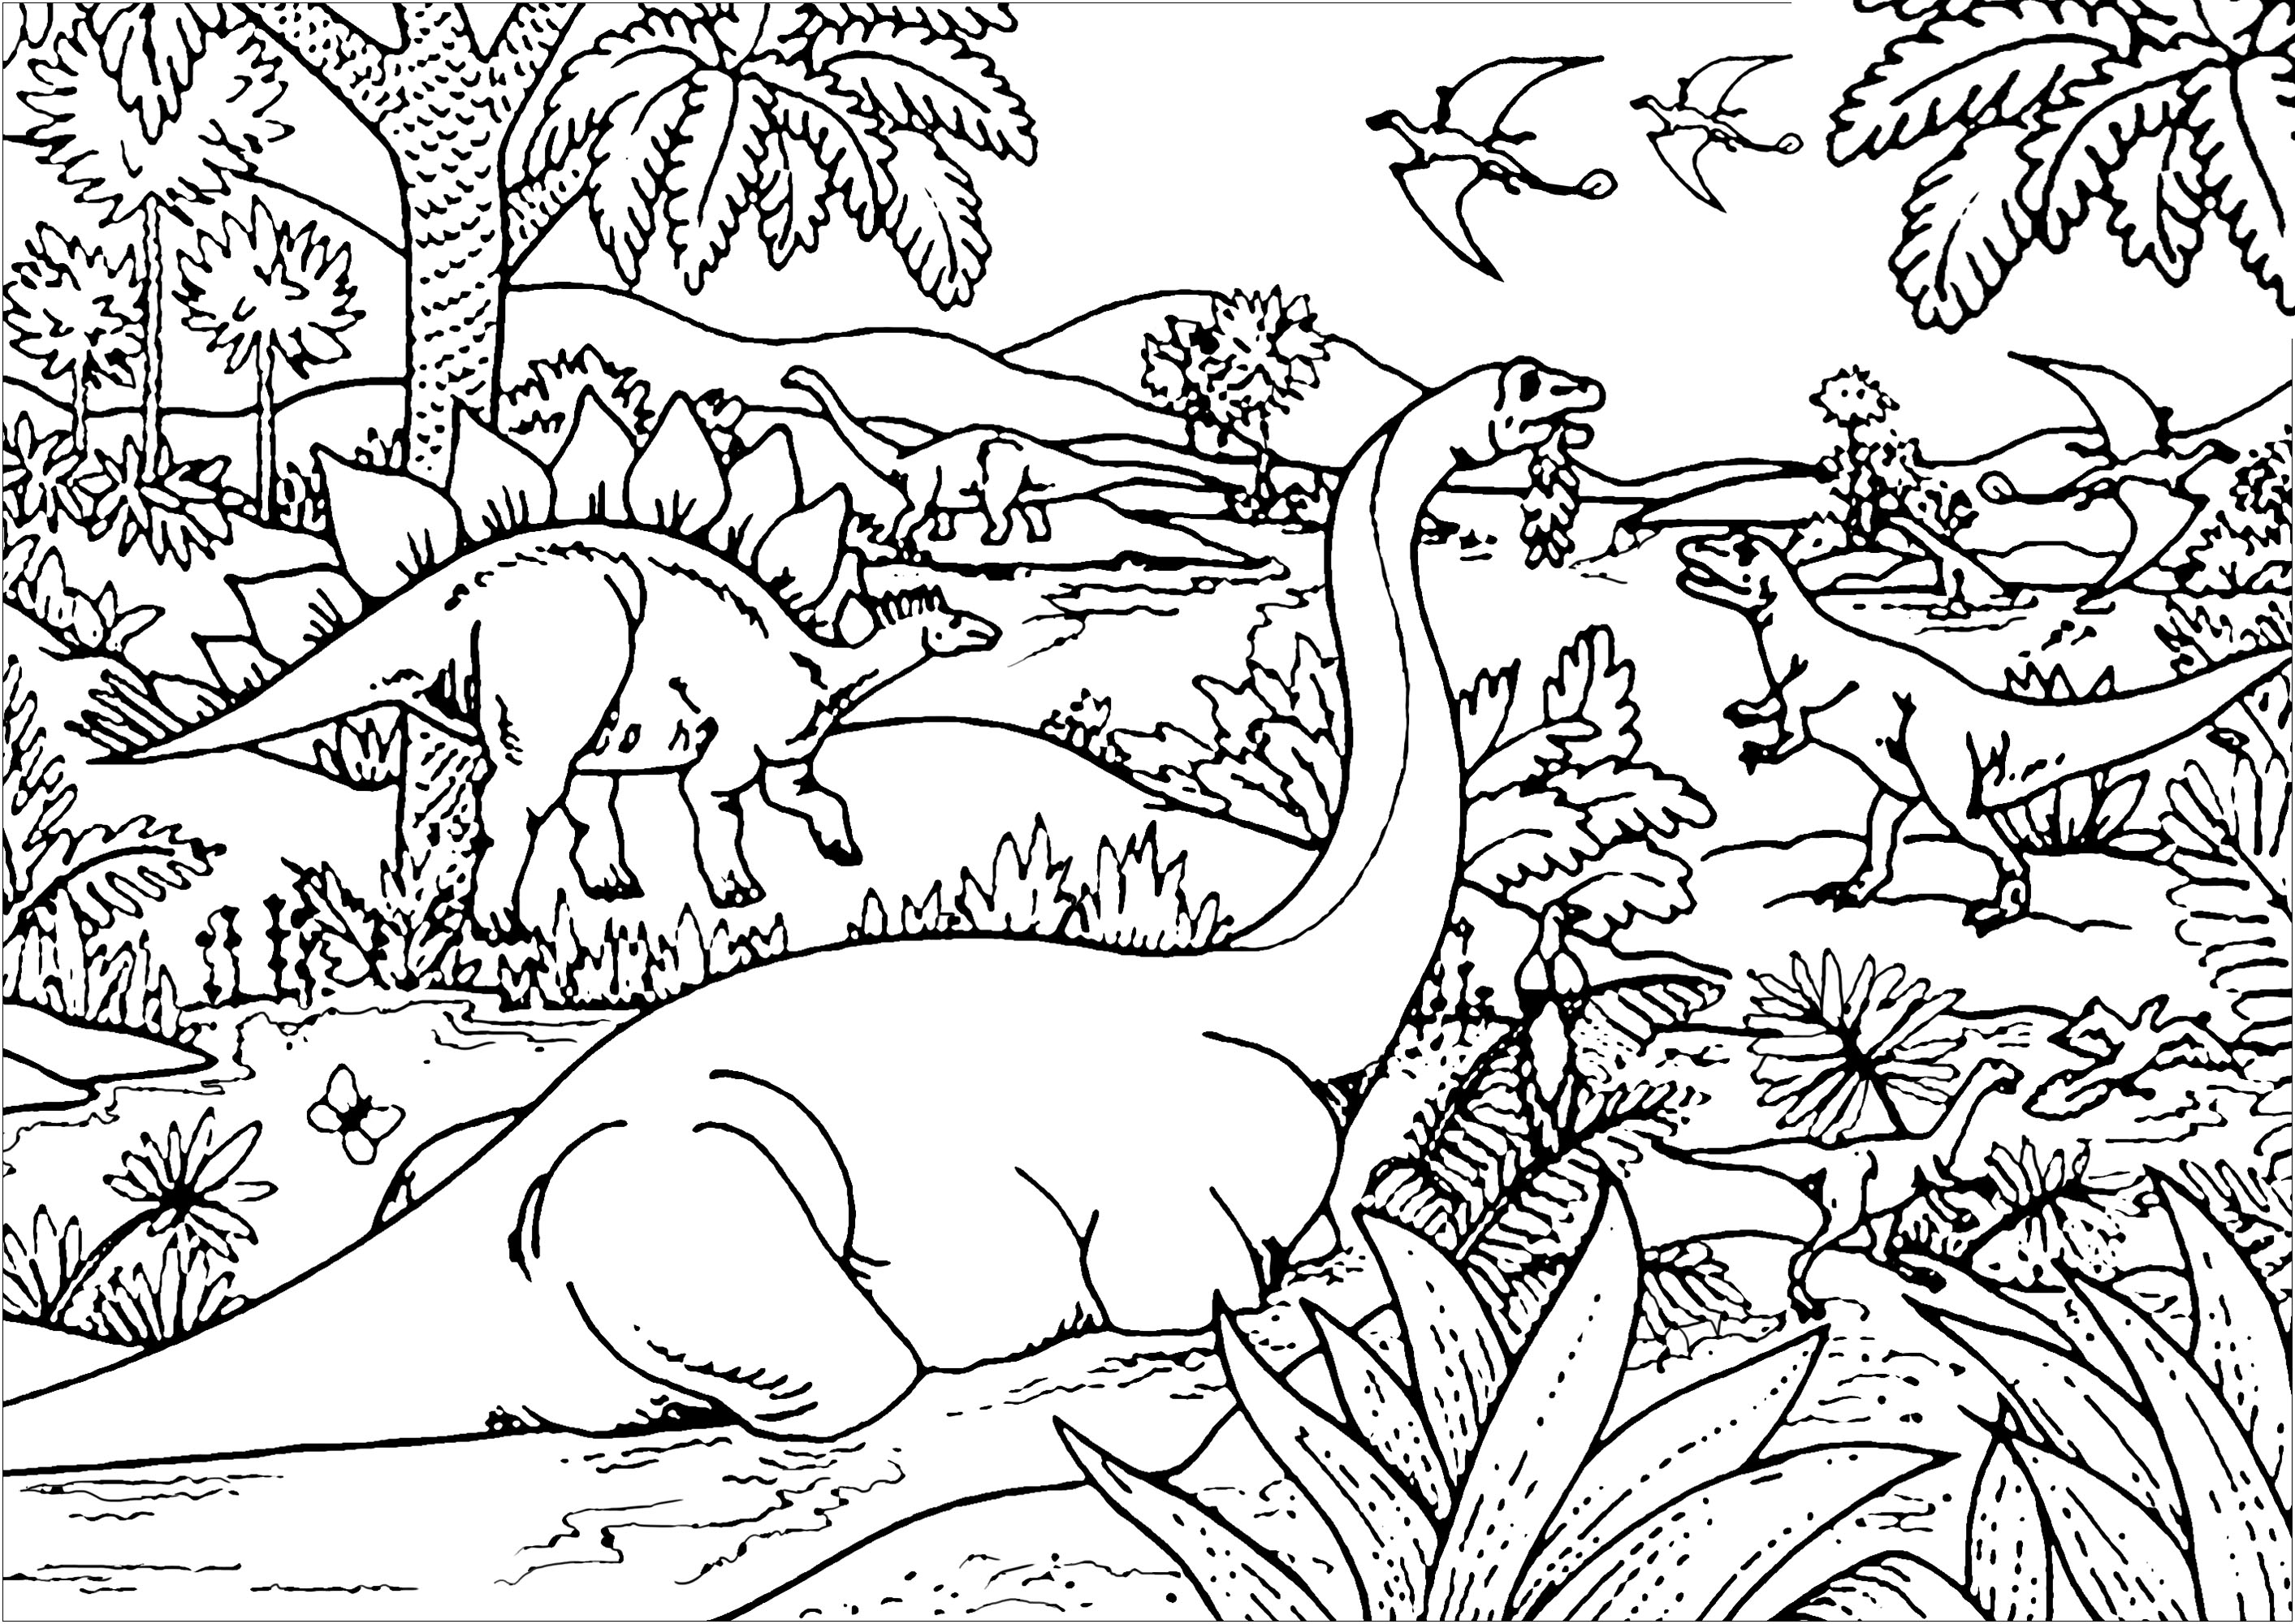 Many Dinosaurs In A Plain - Dinosaurs Adult Coloring Pages